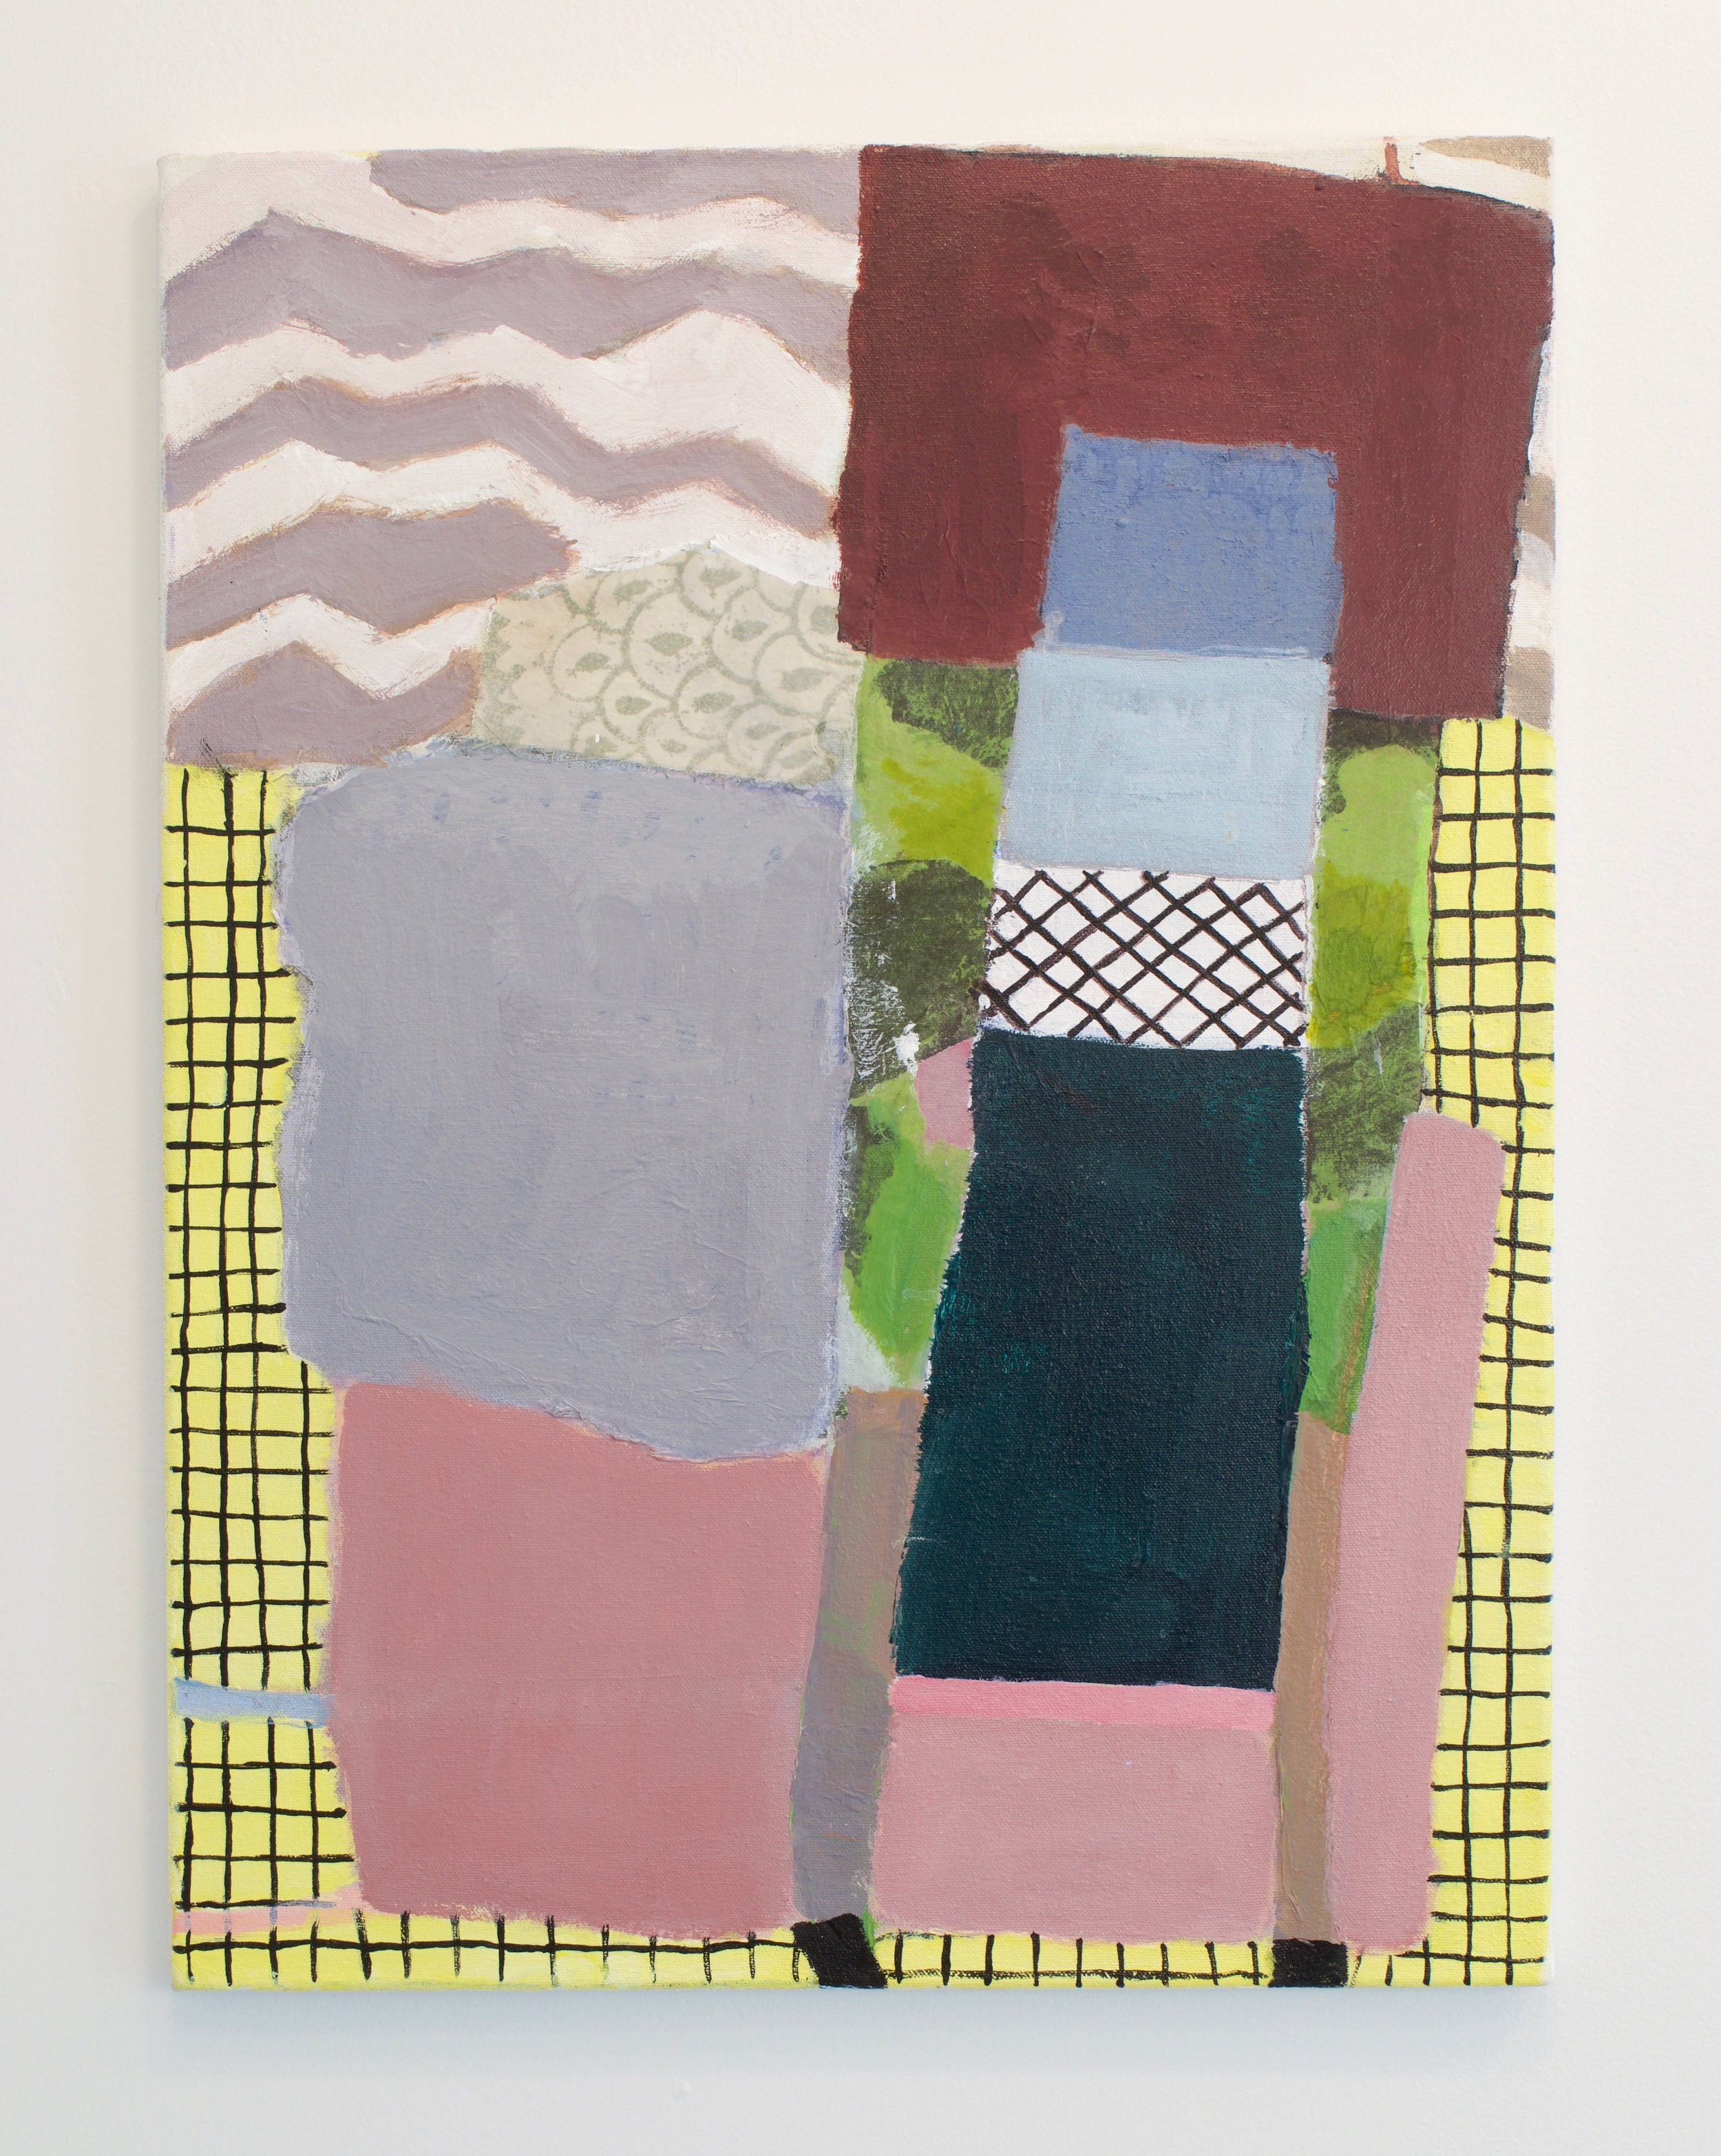 Fukuko Harris, Rocky Beach and Yellow Blanket, 2016. Acrylic, Fabric and Paper on Canvas. 24 x 18 inches.